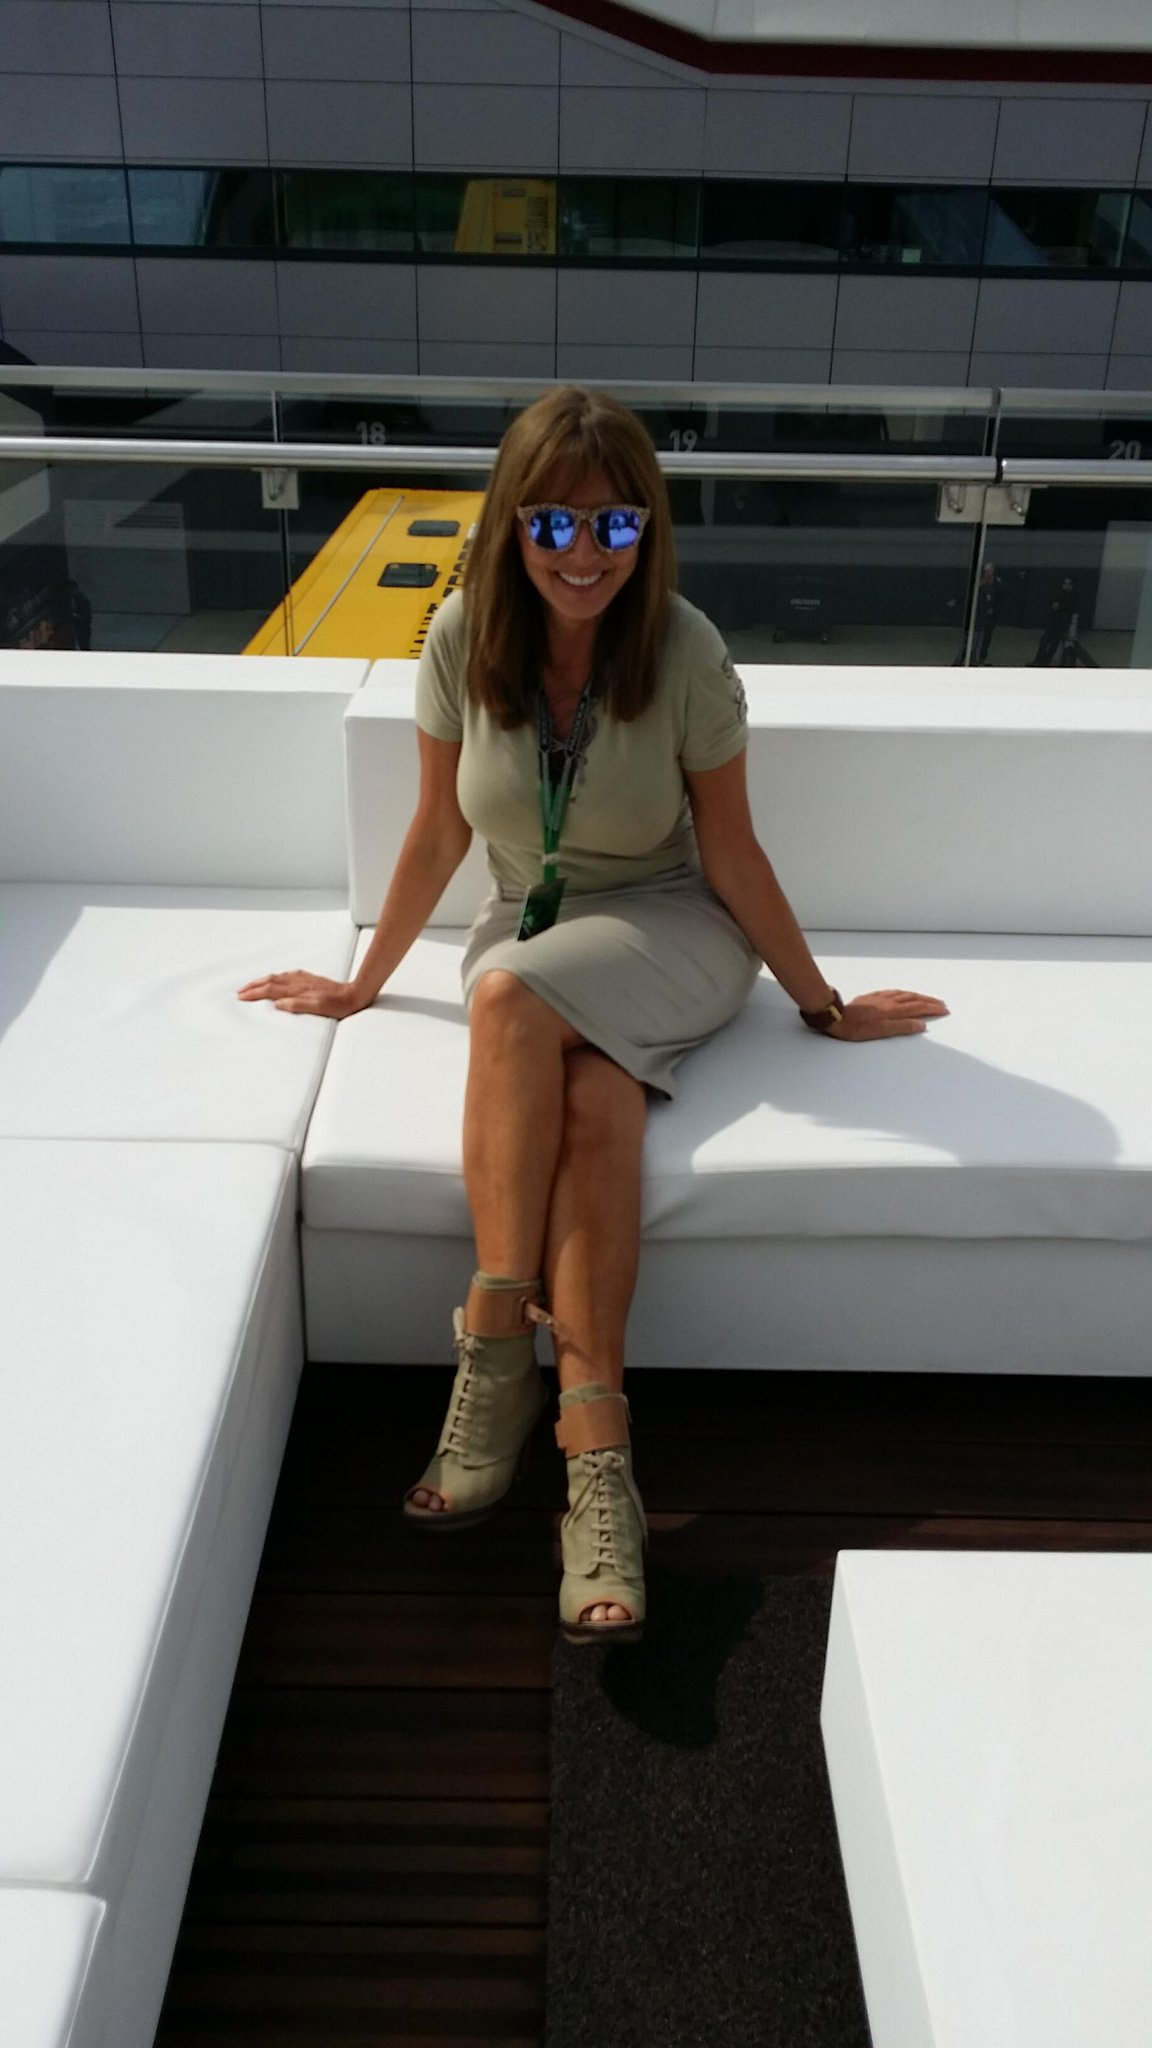 Ooh just found this from yesterday... On the roof of @MercedesAMGF1 motor home overlooking the paddock. @suziperry x http://t.co/p0kmTmmAw9